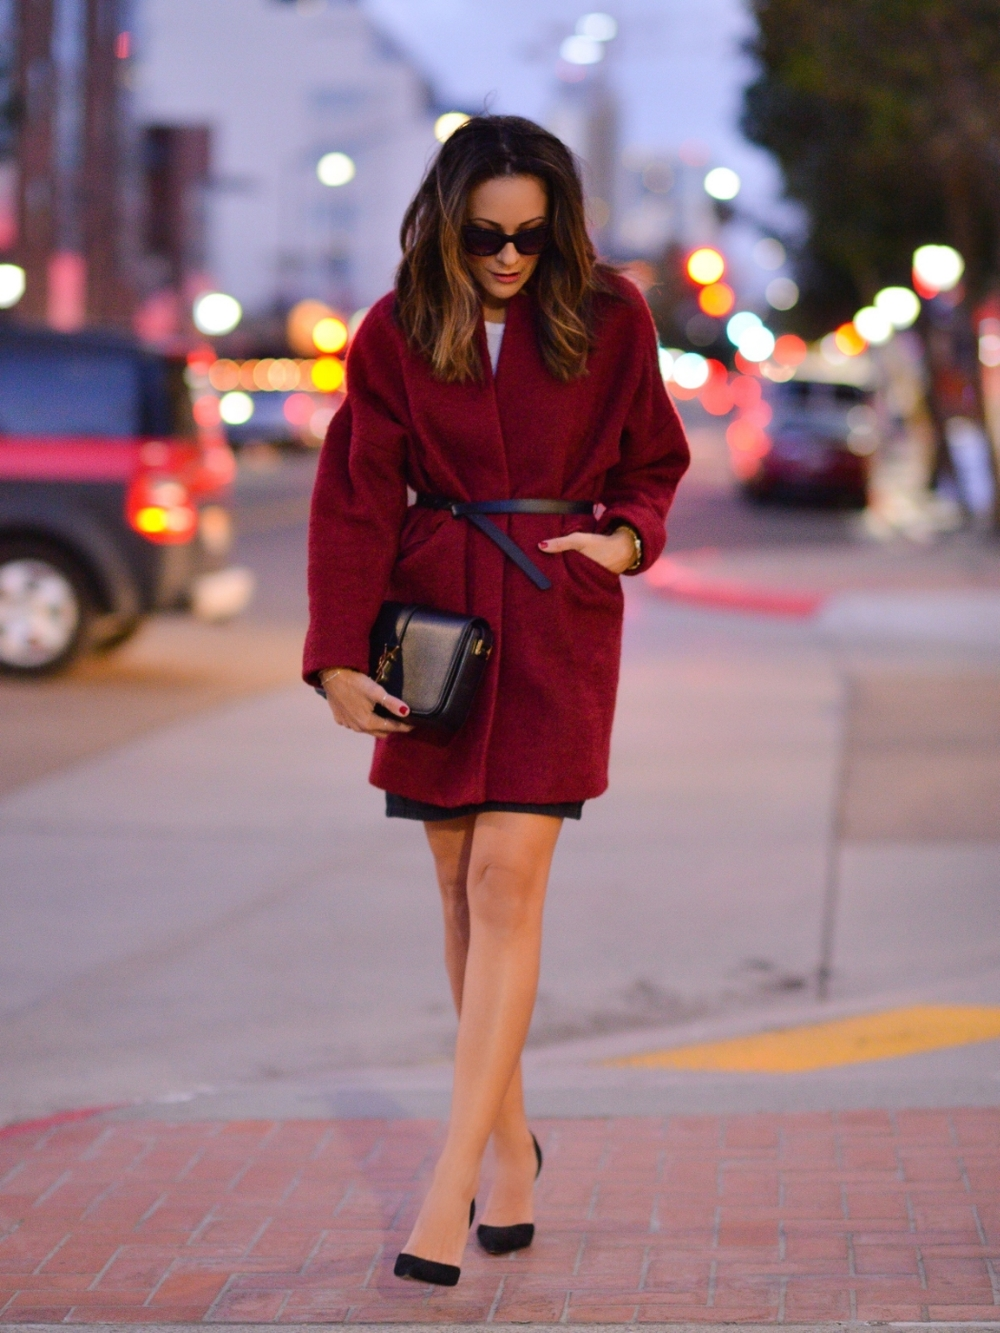 Topshop_Wool_Coat_Streetstyle_LucysWhims_FashionBlogger_SanDiego.jpg